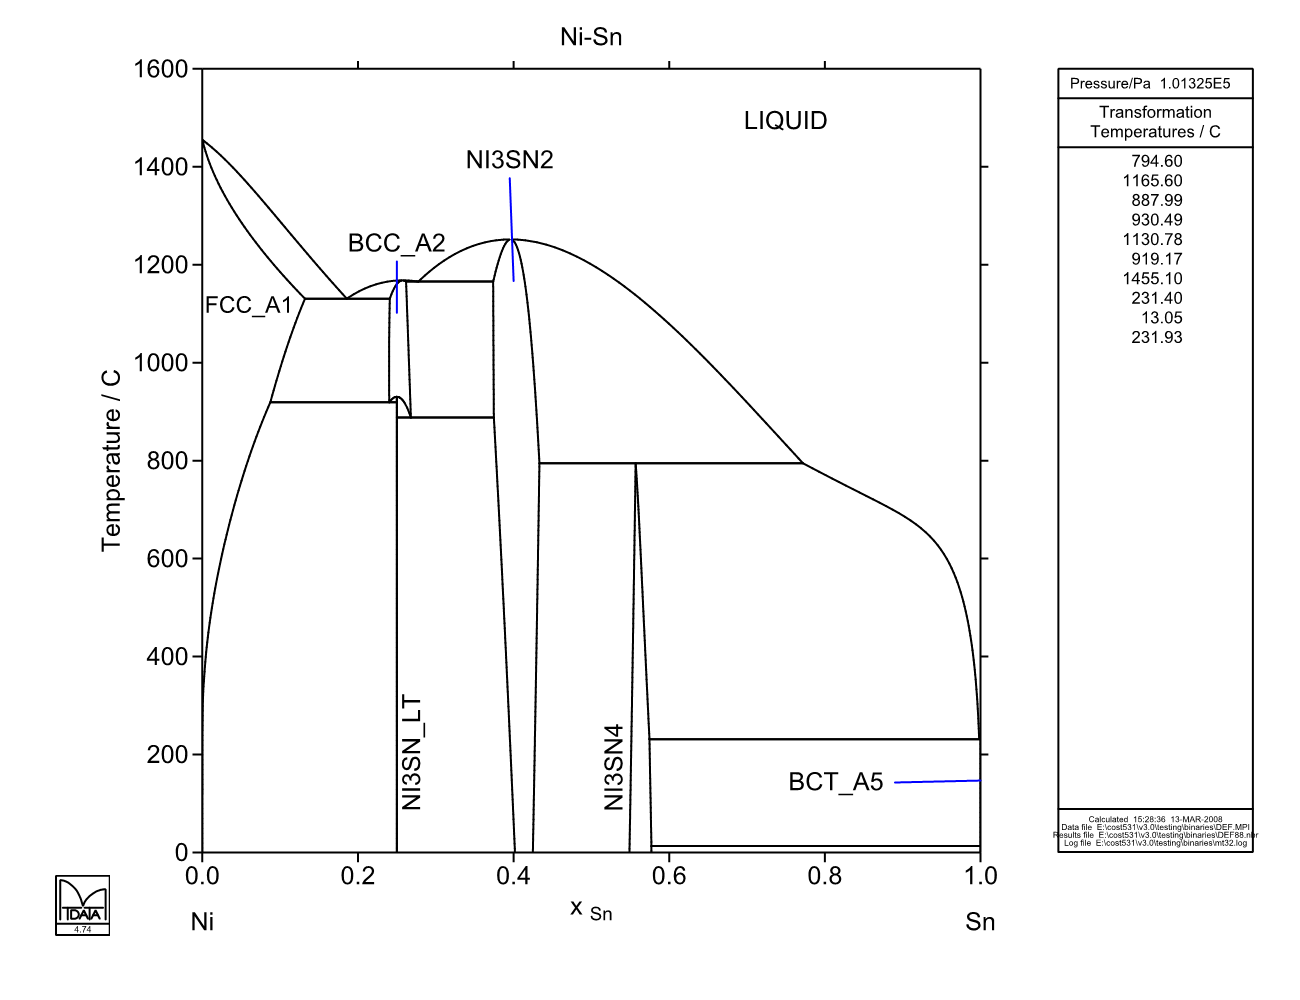 Calculated Ni Sn Phase Diagram